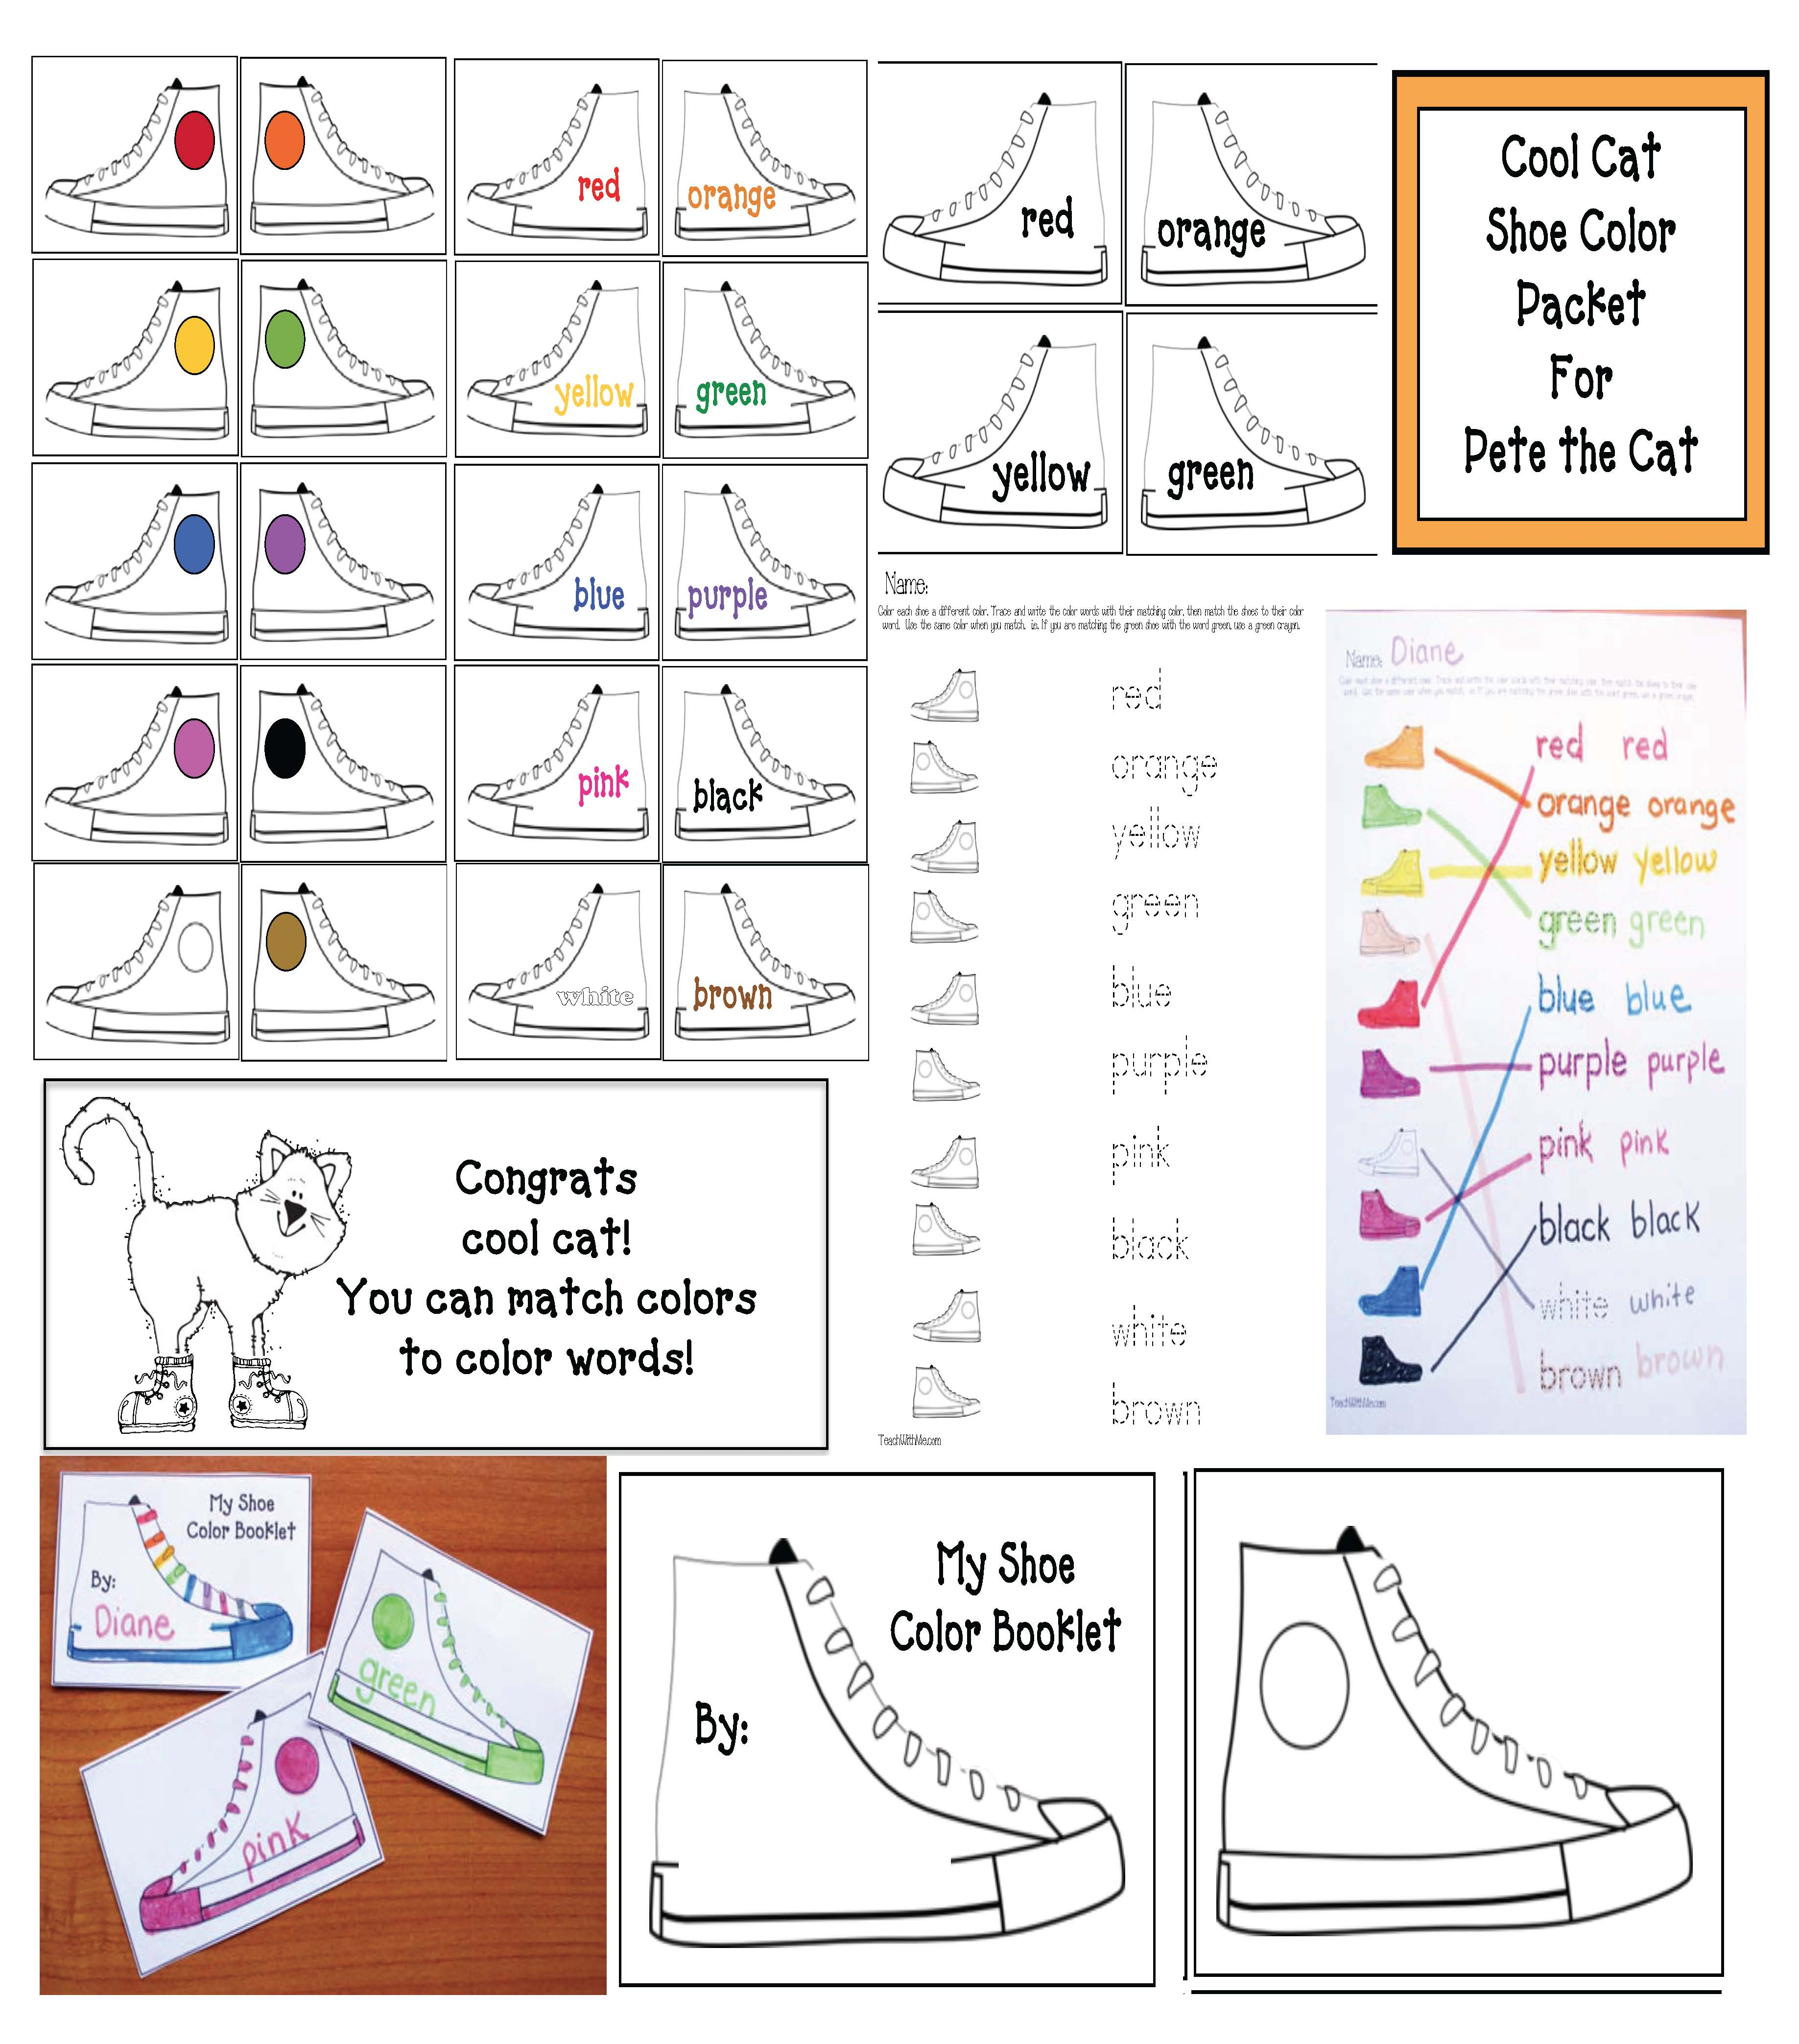 pete the cat, pete the cat activities, color games, color activities, common core state standards for k, CCSS for 1st, end punctuation activities, capitalization activities